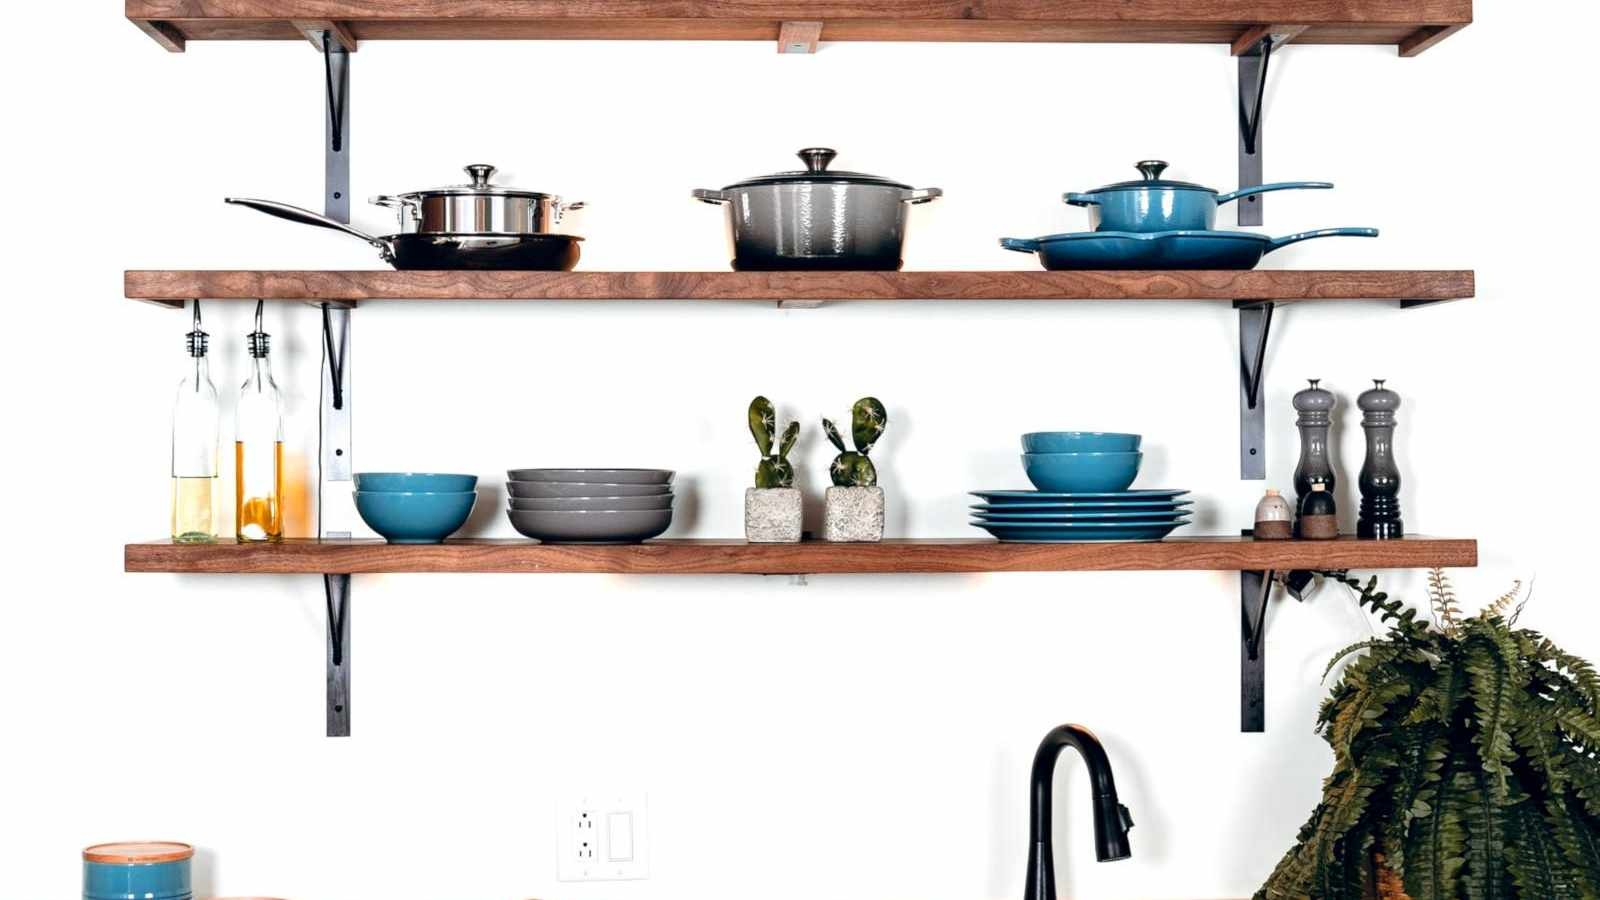 HOW TO TURN SINGLE-PURPOSE KITCHEN TOOLS INTO MULTIUSE GADGETS